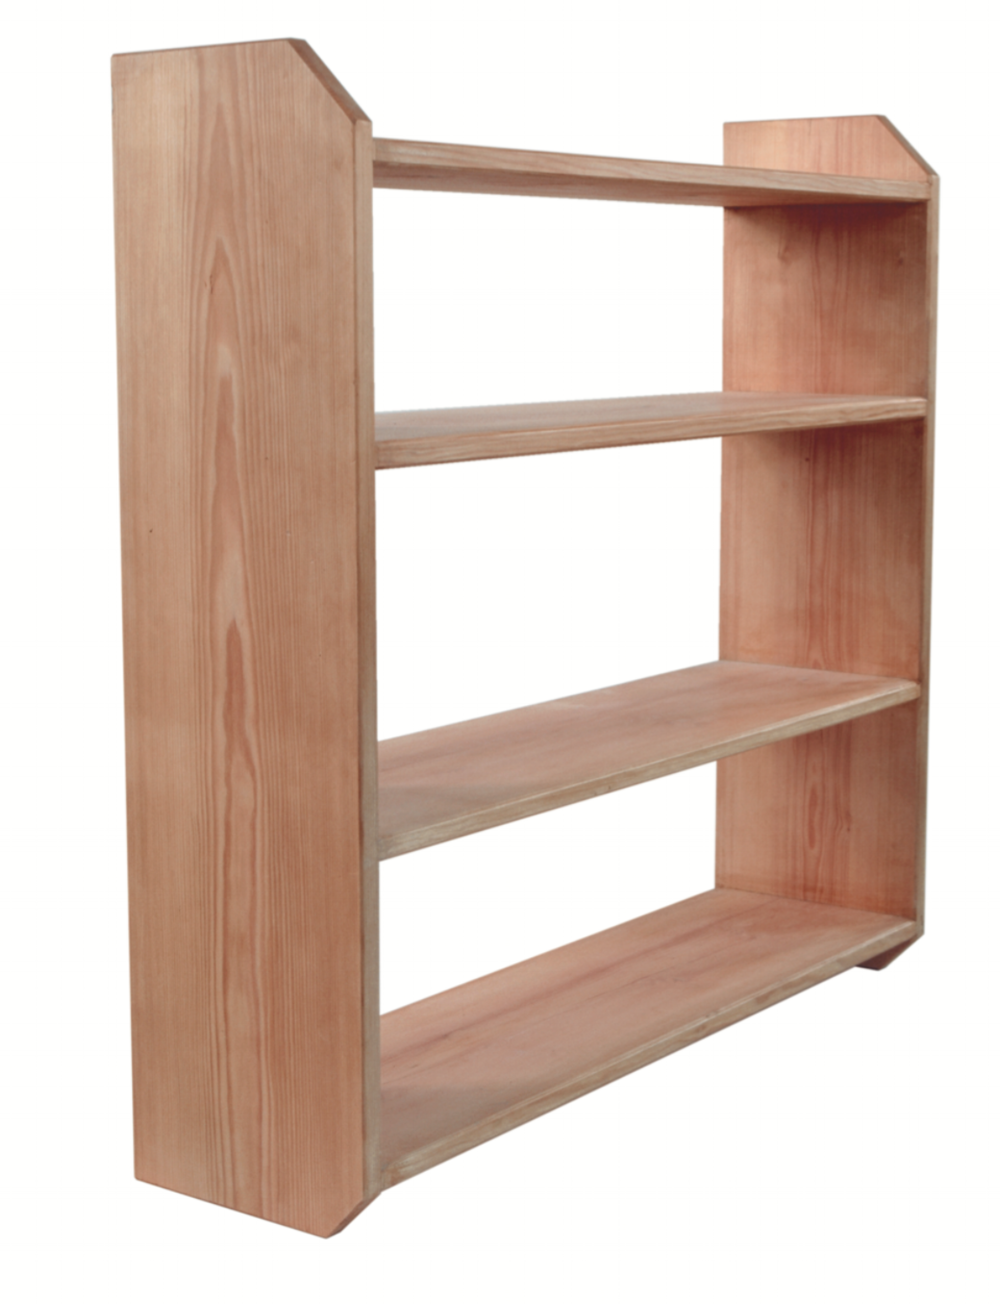 Shelving made with sliding dovetail s